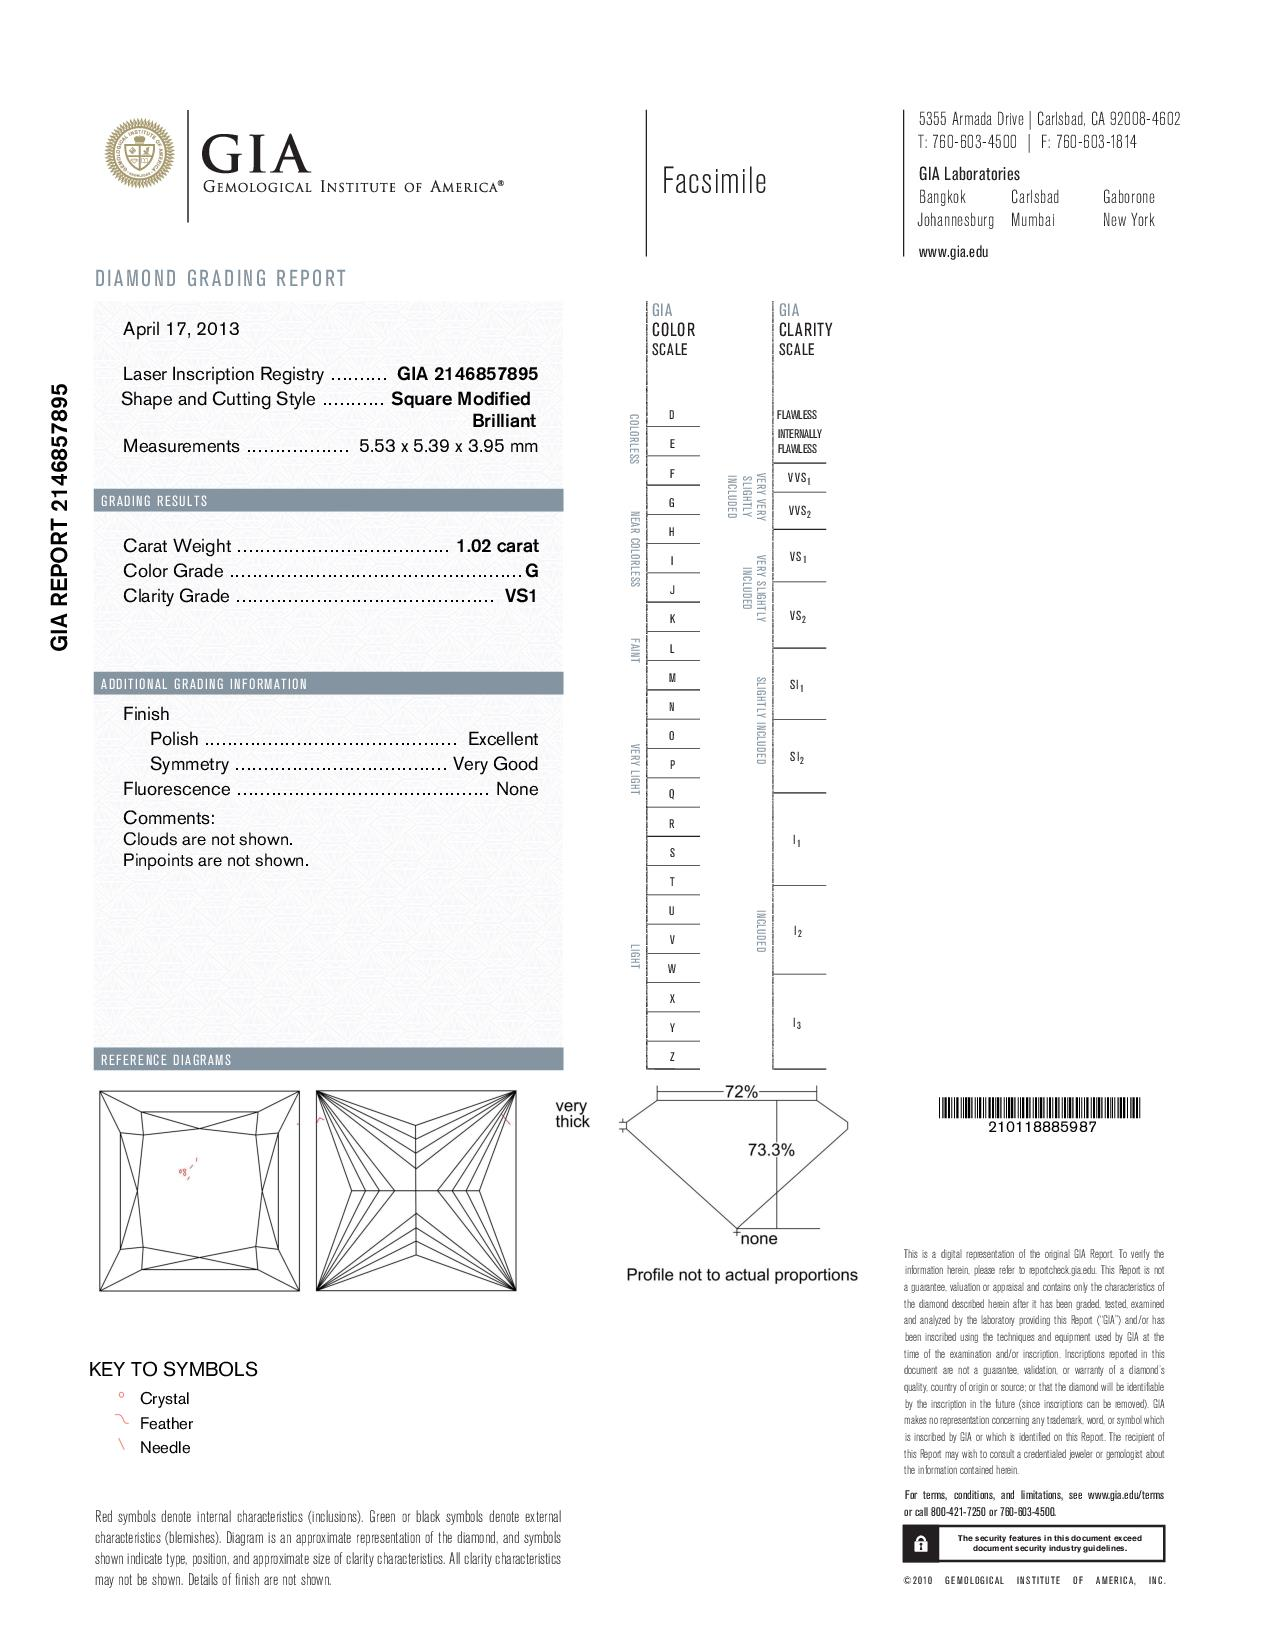 This is a 1.02 carat princess shape, G color, VS1 clarity natural diamond accompanied by a GIA grading report.